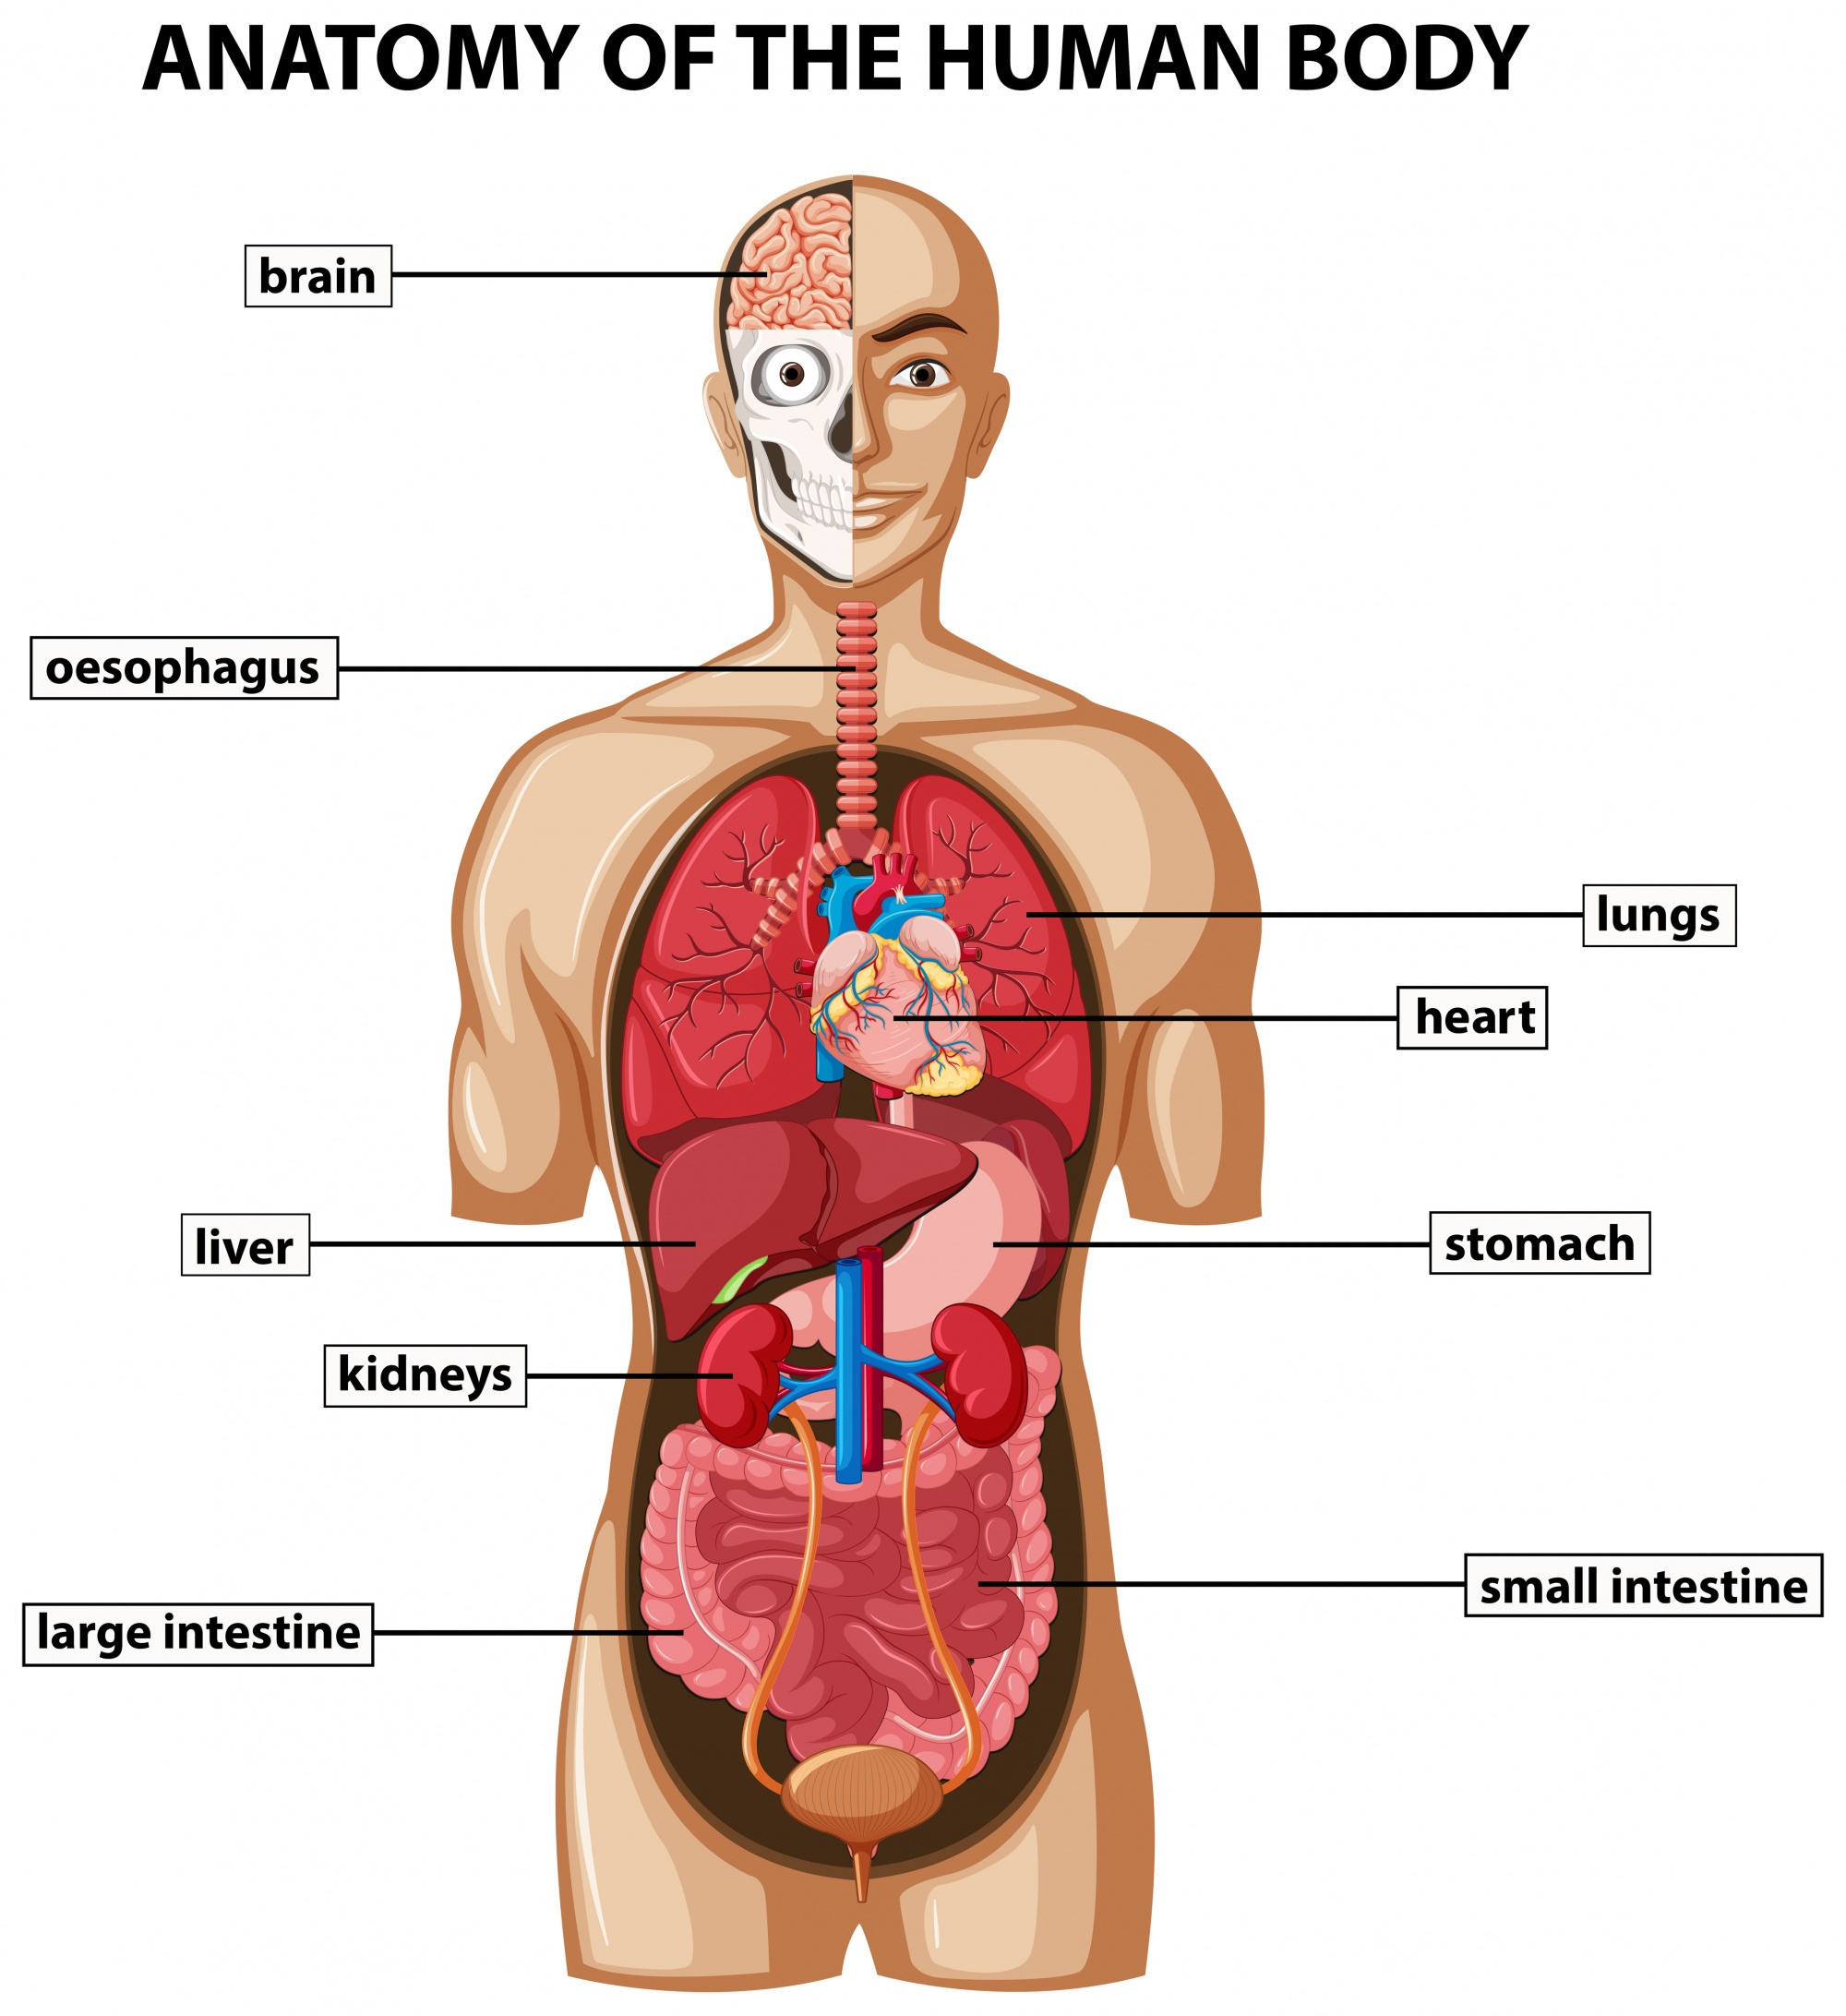 Diagram showing anatomy of human body with names